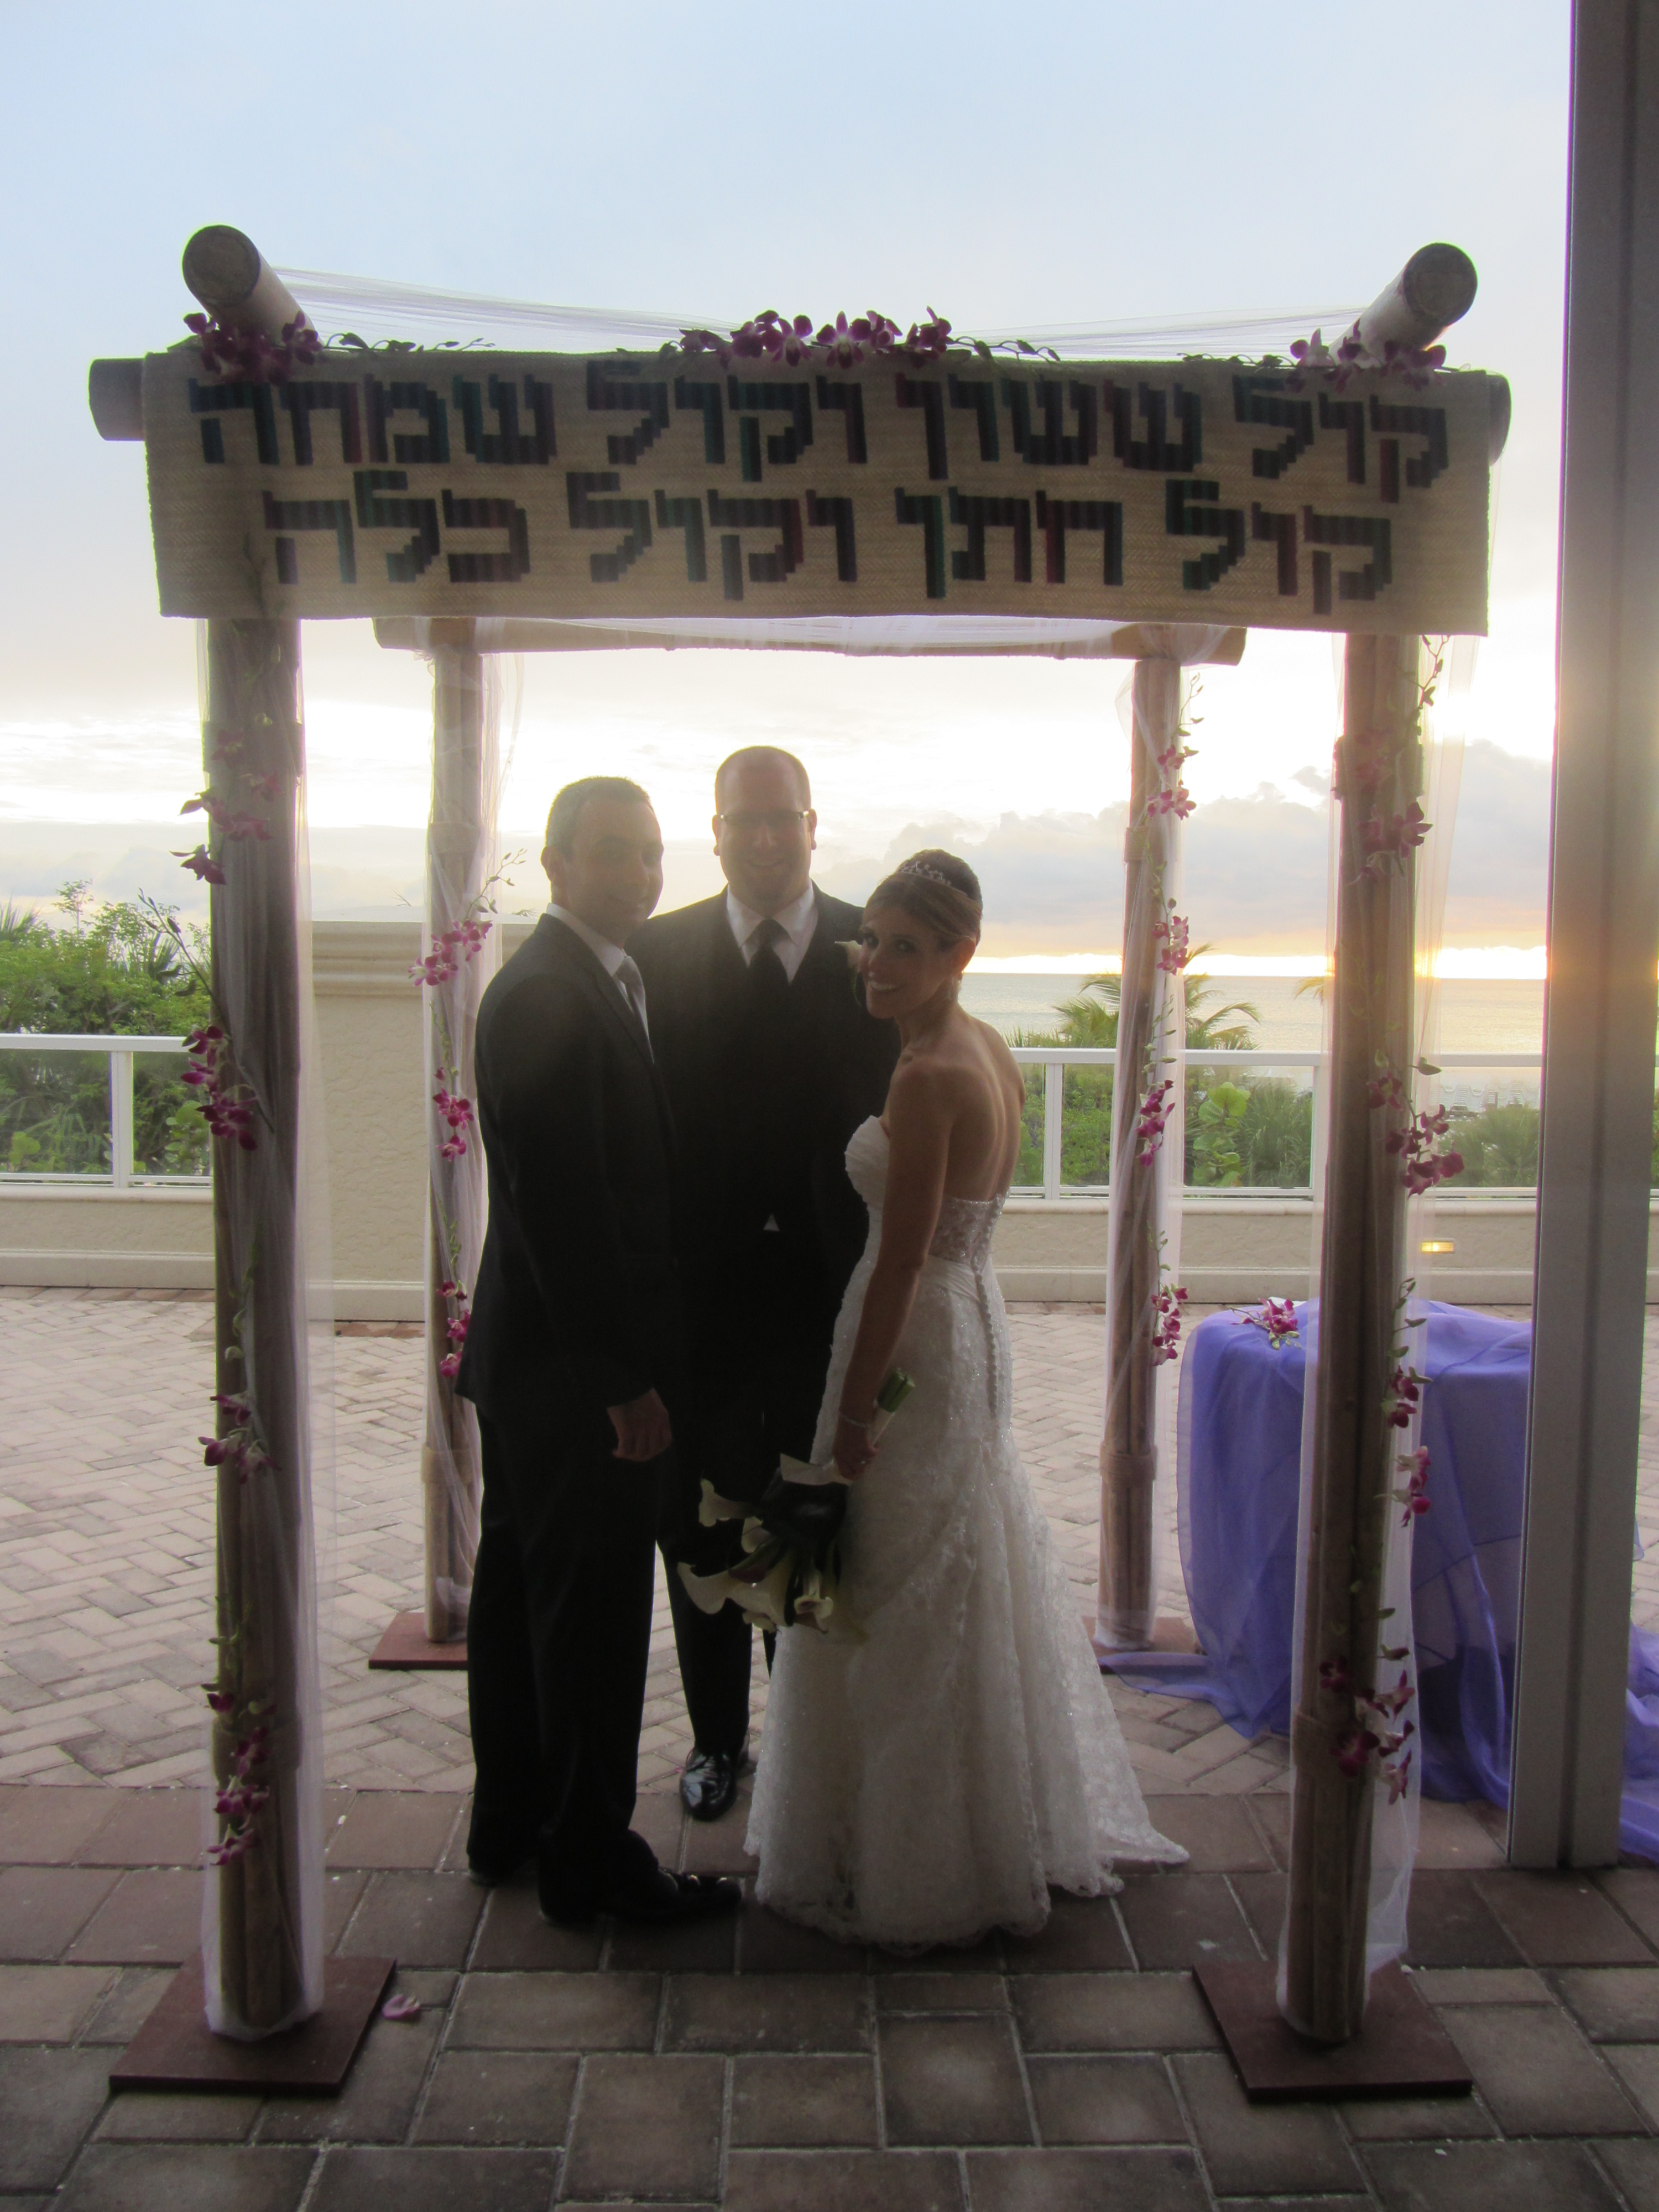 jewish singles in marco island Marco island's best 100% free jewish dating site find jewish dates at mingle2's personals for marco island this free jewish dating site.